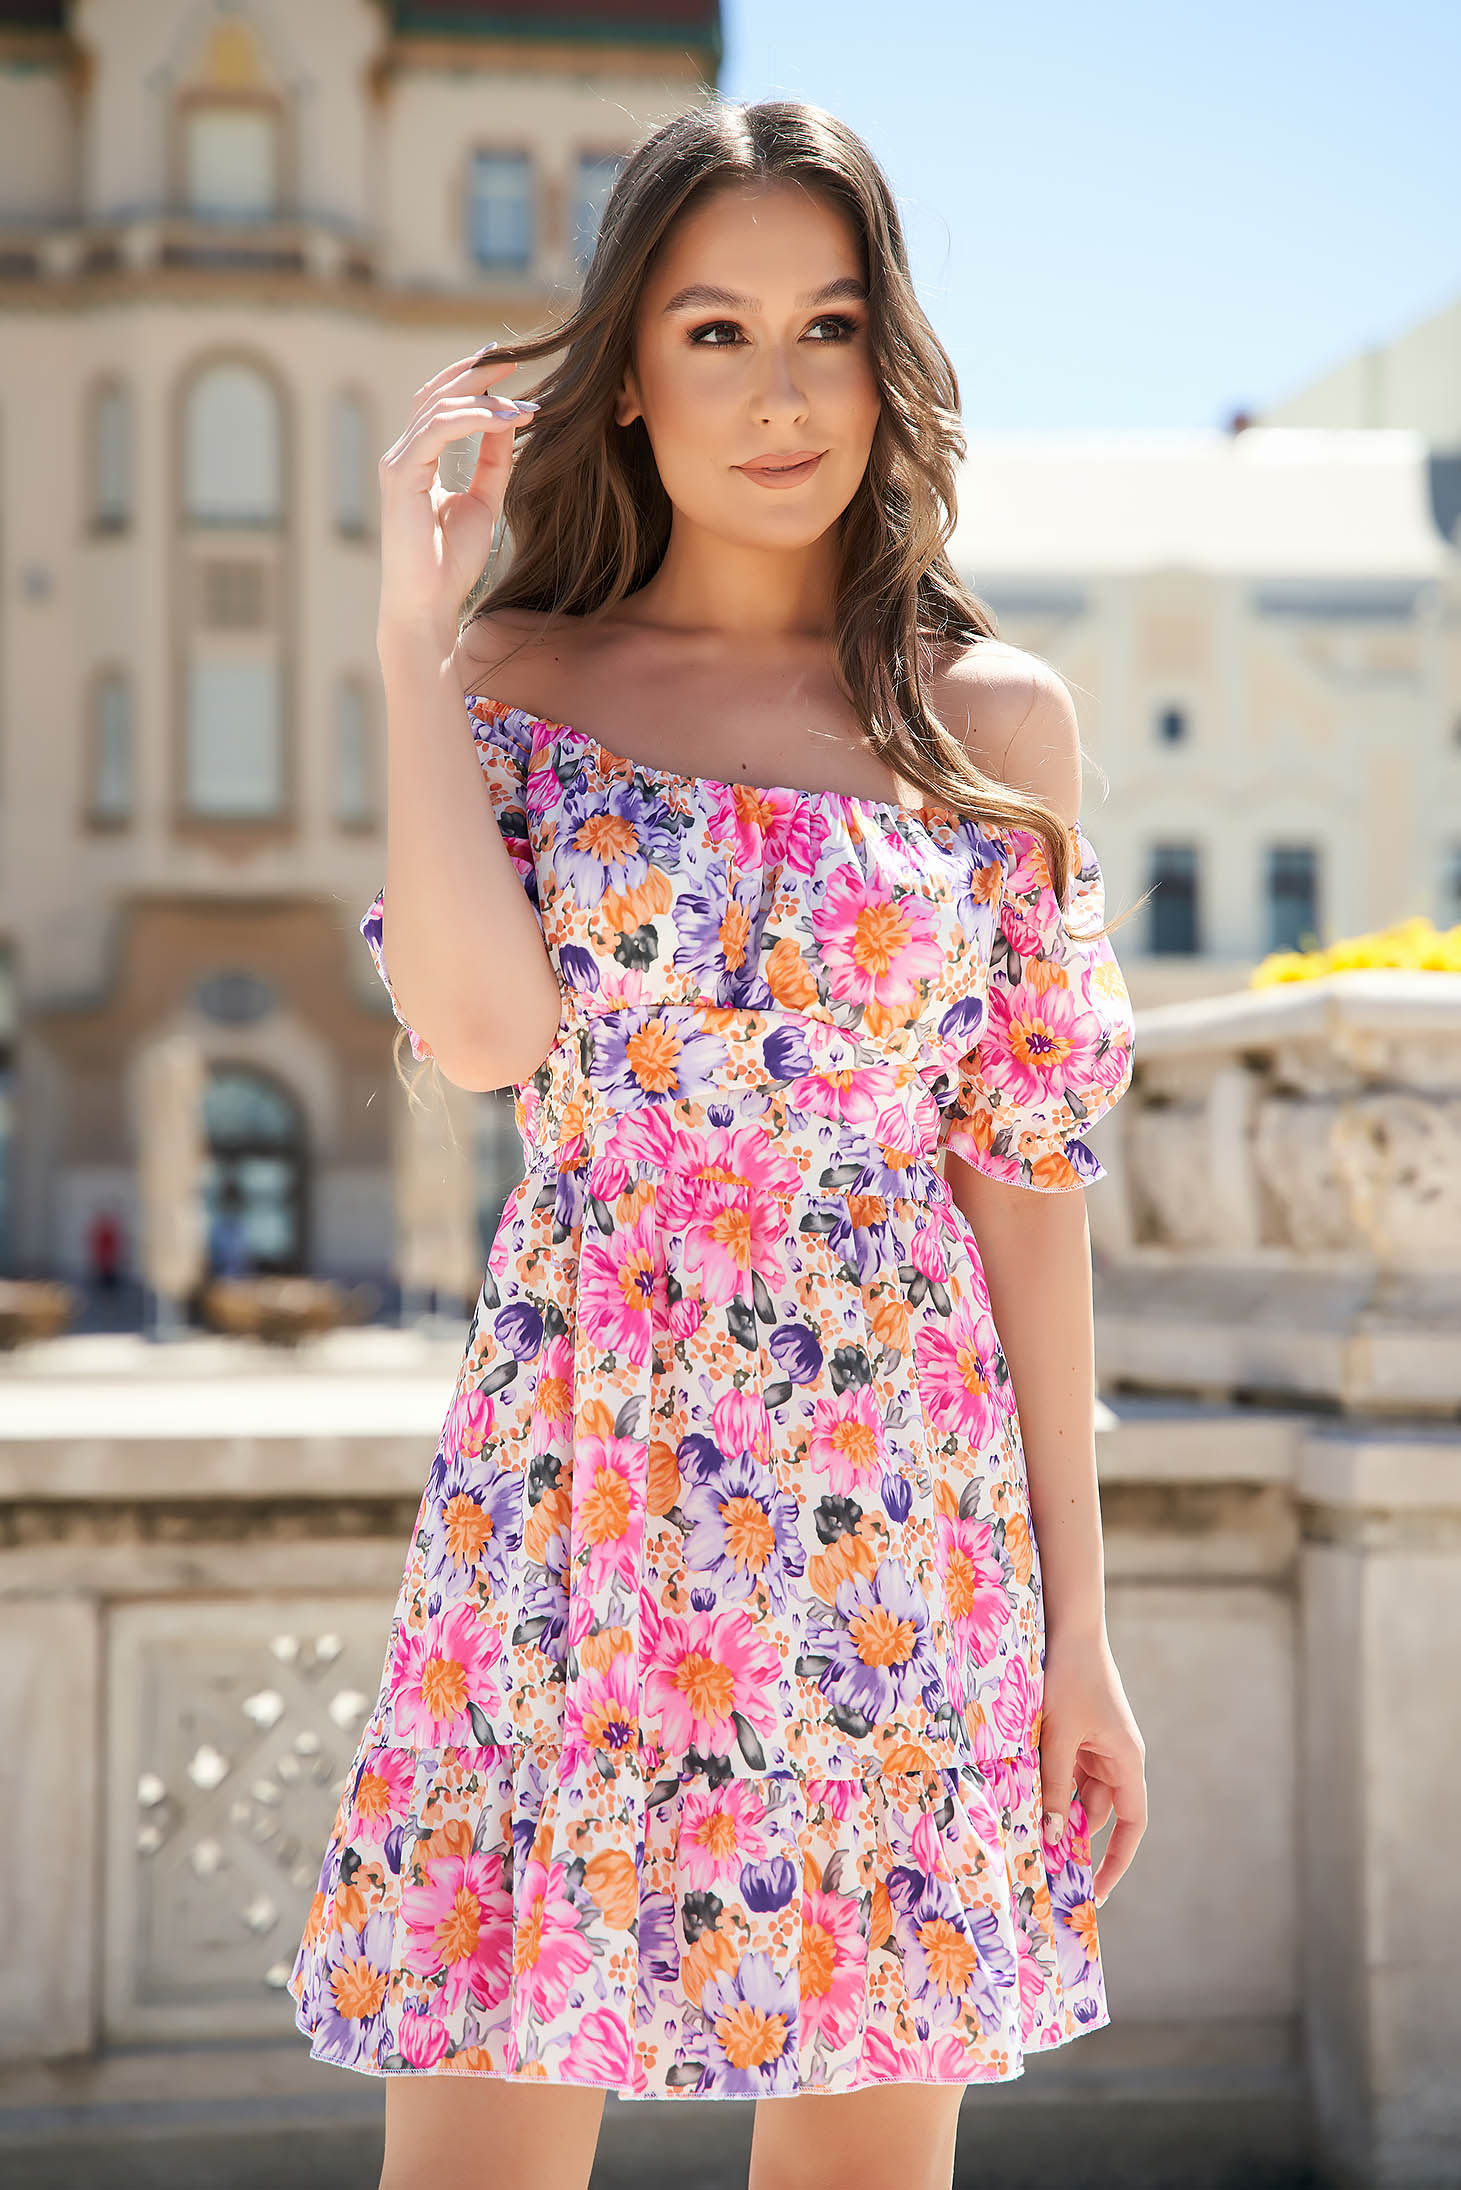 Pink dress with floral print cloche with ruffle details on the shoulders